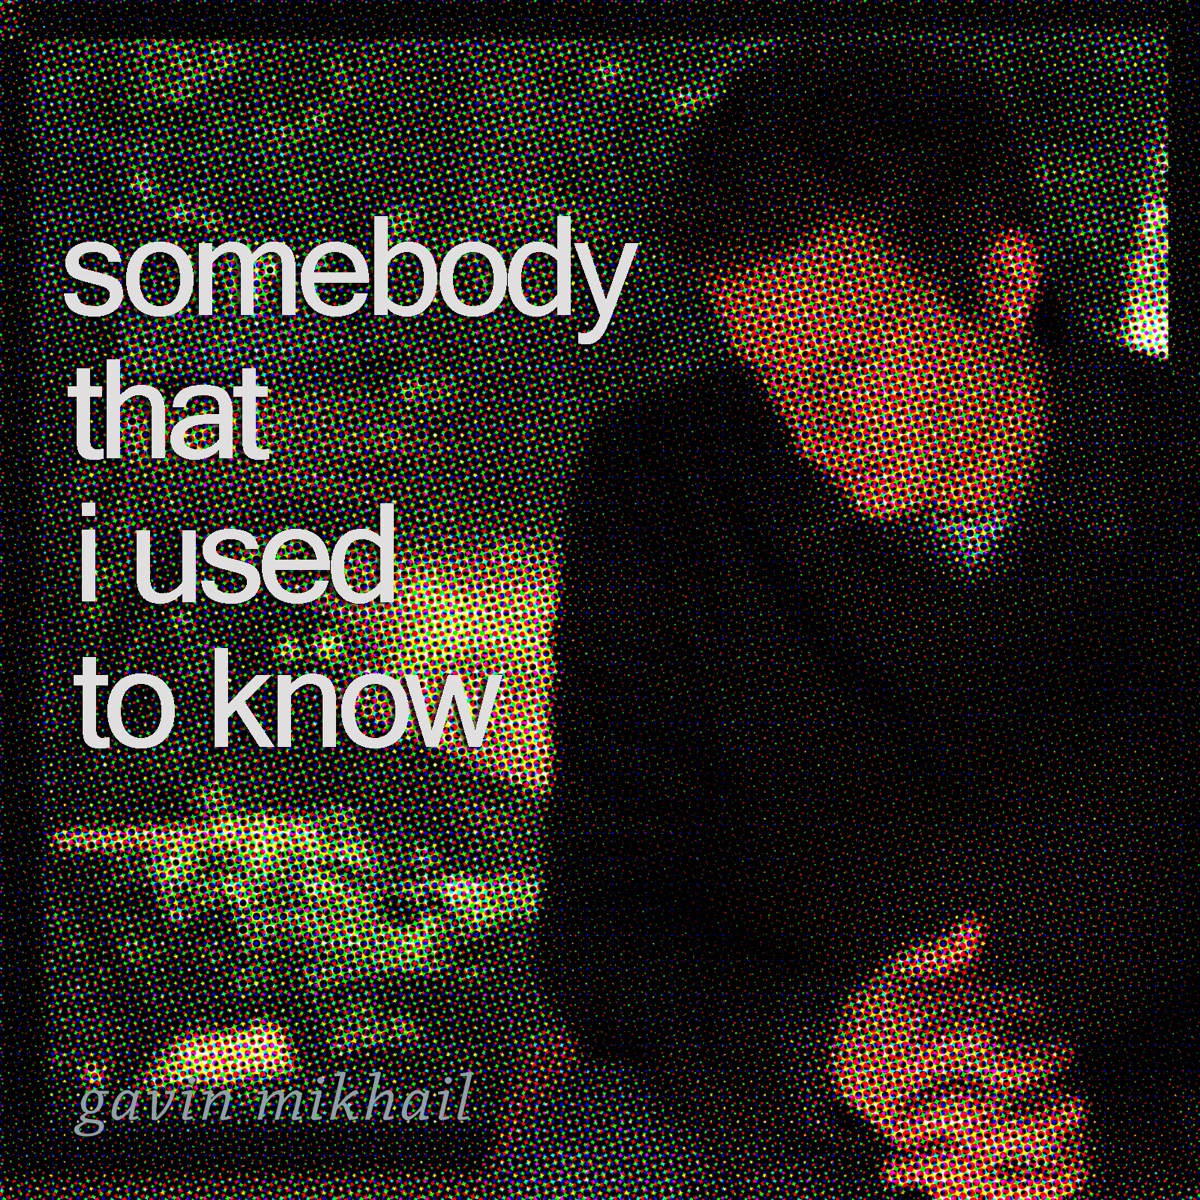 Somebody That I Used To Know - Single Album Cover by Gavin ...